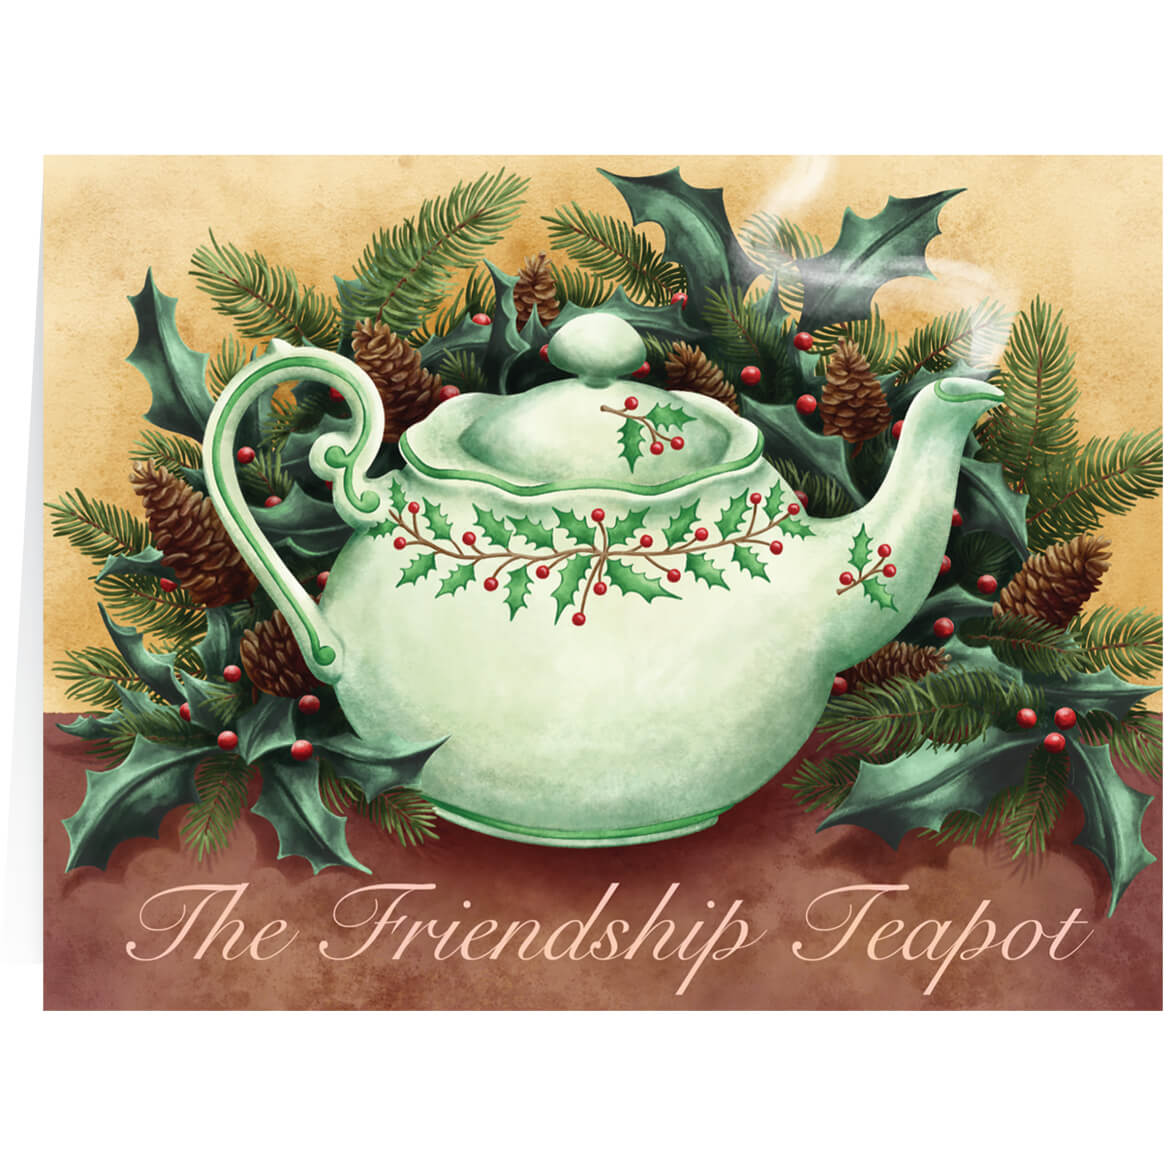 Personalized Teapot Christmas Card Set of 20 - Miles Kimball